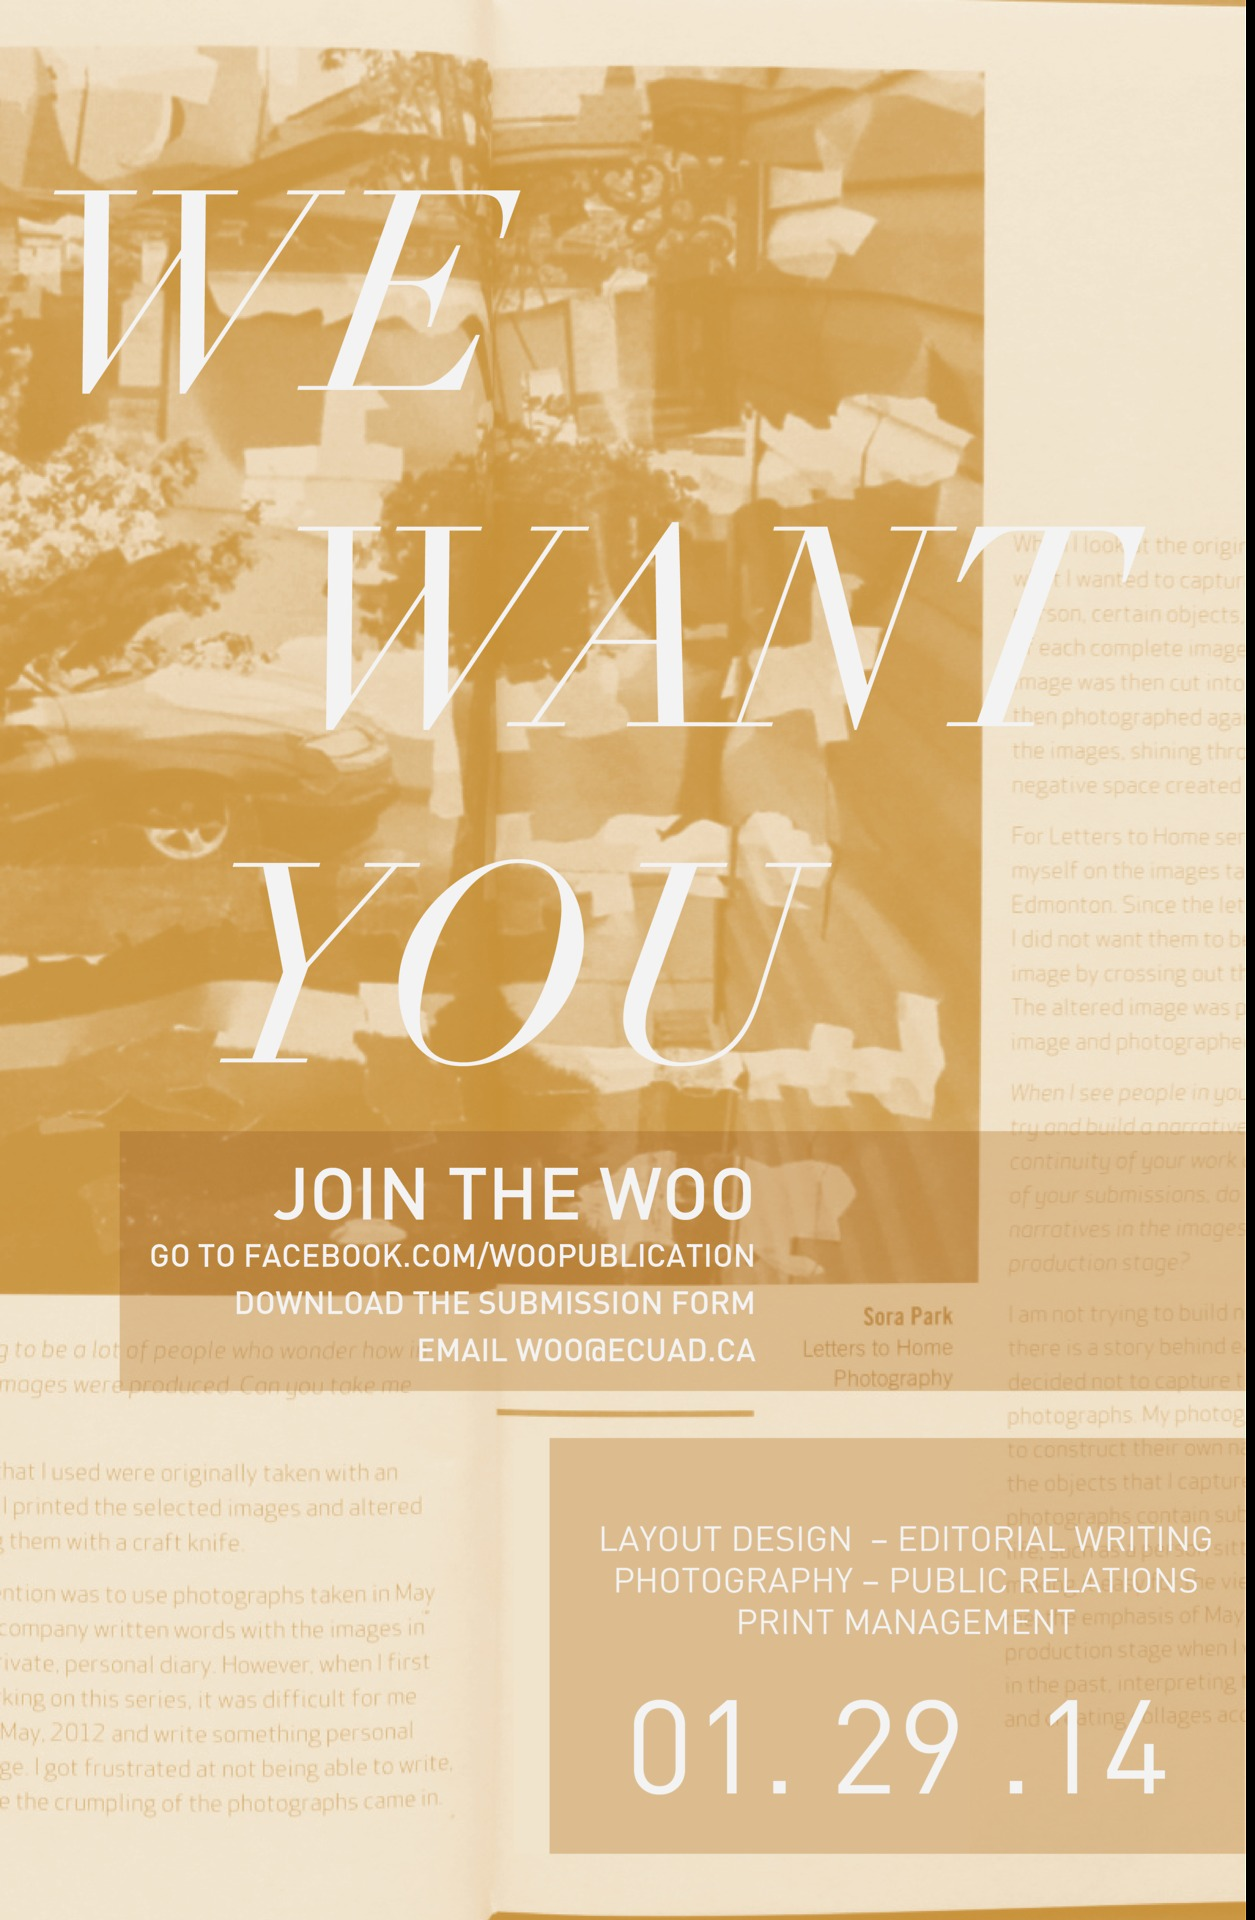 JOIN THE WOO!!!! Ever wonder about the process of creating a publication?  The WOO provides extremely valuable skills and knowledge that will set you apart in your field… SO join the WOO!  We need Designers, Editor, PR managers, and Print Managers Fill out this application form and email it to woo@ecuad.ca DEADLINE: January 29!  https://www.dropbox.com/s/bcjrh4kuuok9g1u/WOO_Aplication_2014_form.pdf